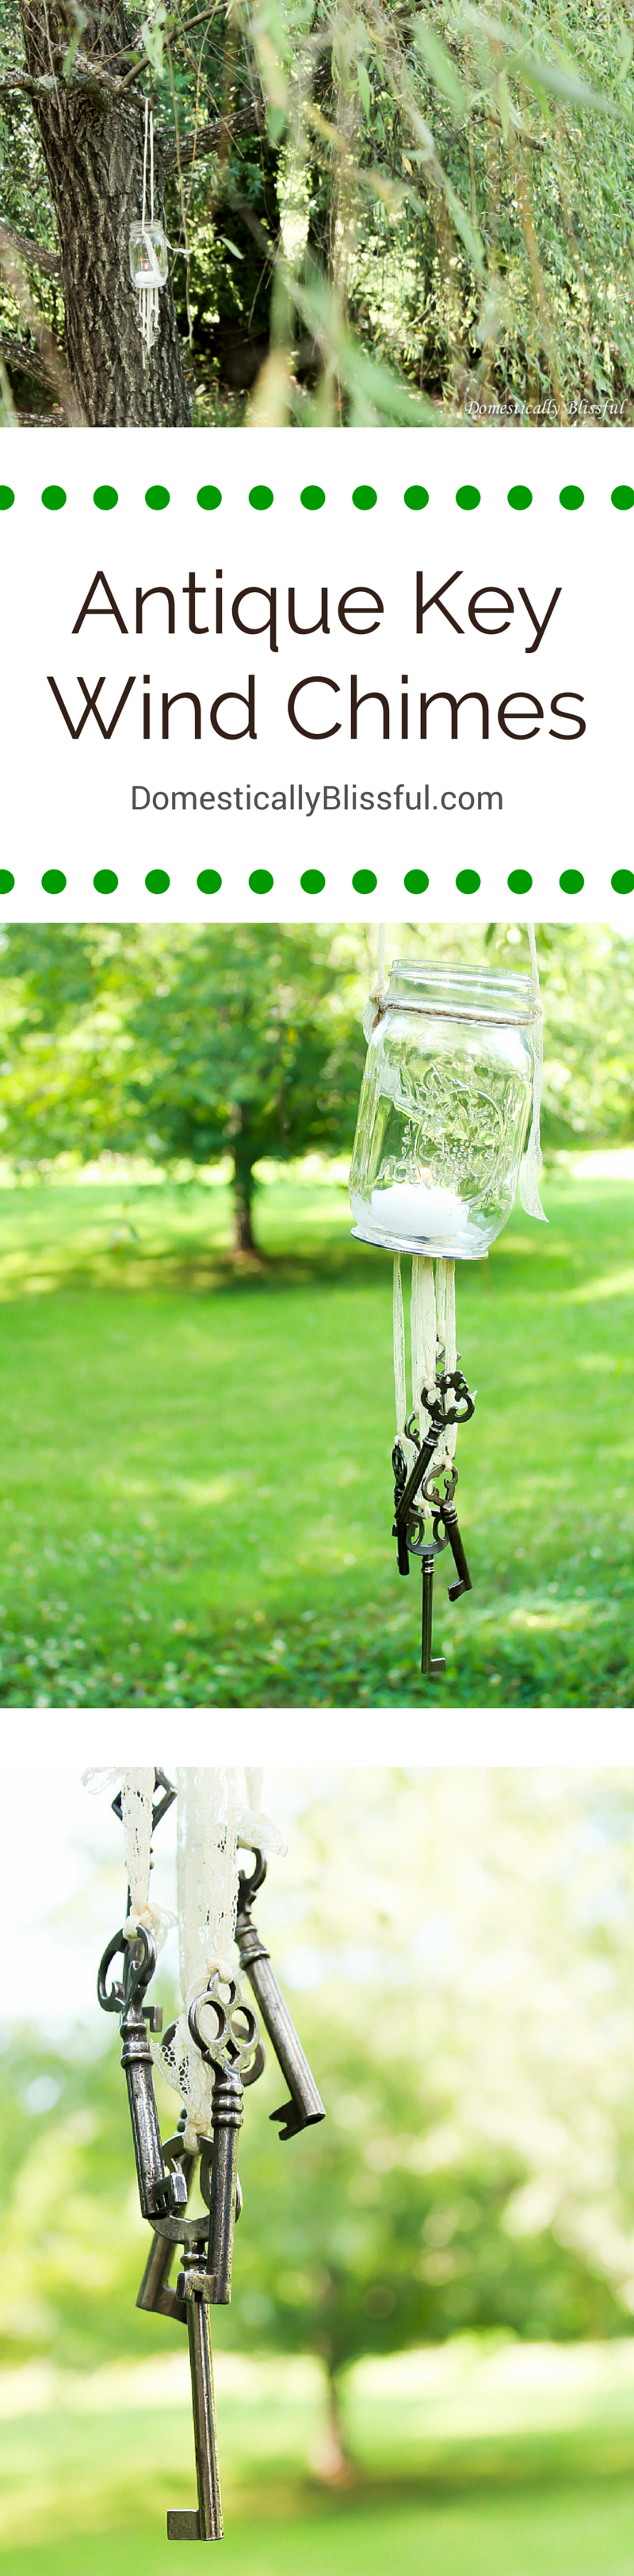 Antique Key Wind Chimes by Domestically Blissful